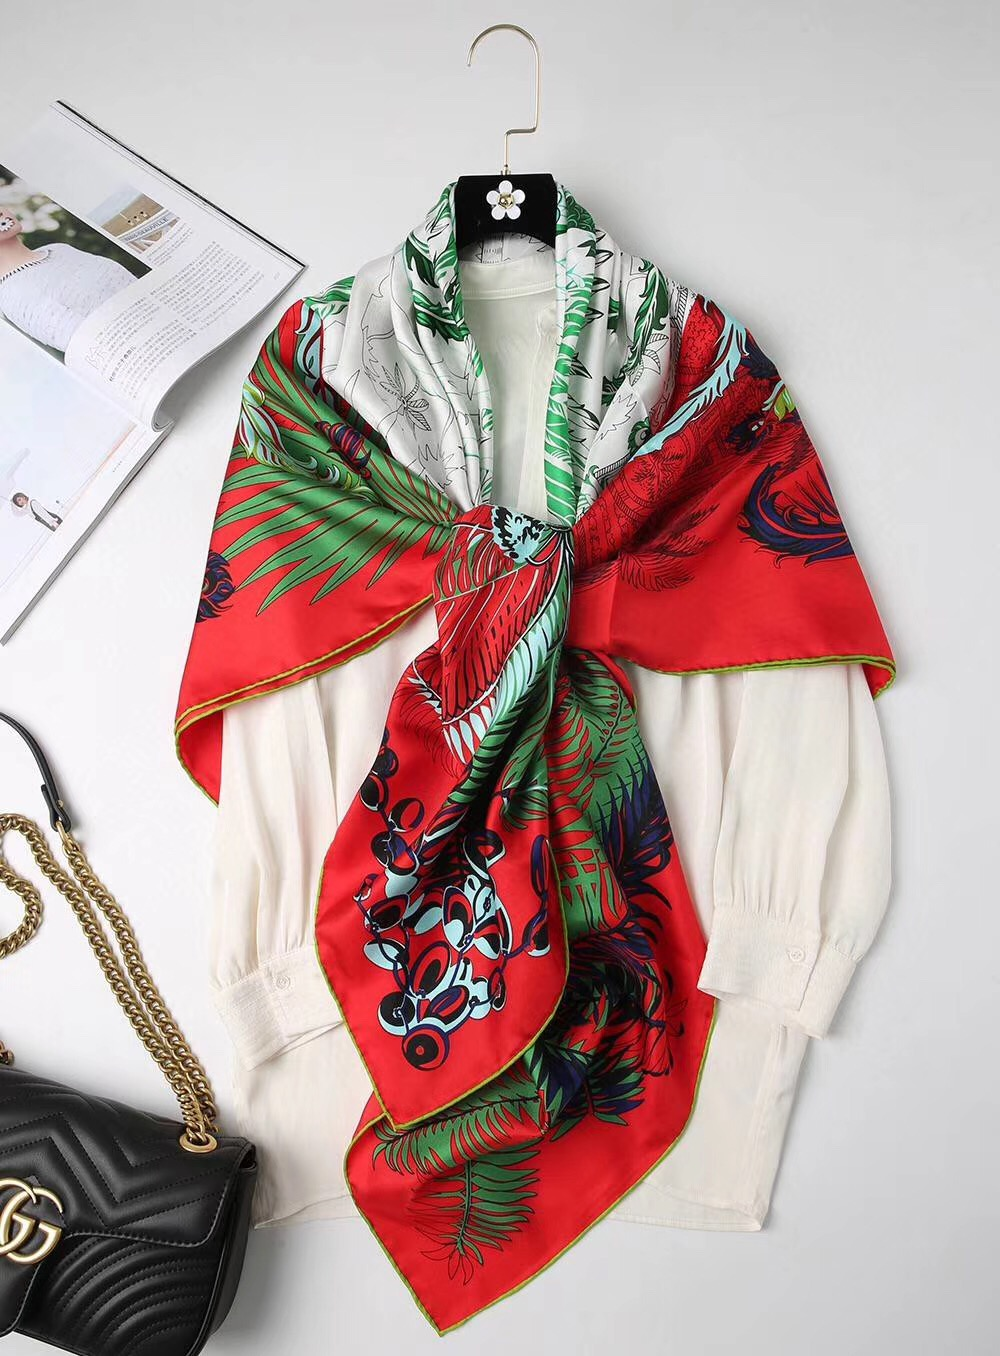 2020 New Arrival Fashion  Brand Classic  Pattern  100% Silk Scarf 140*140 Cm Square Shawl Twill Wrap For Women  Free Shipping